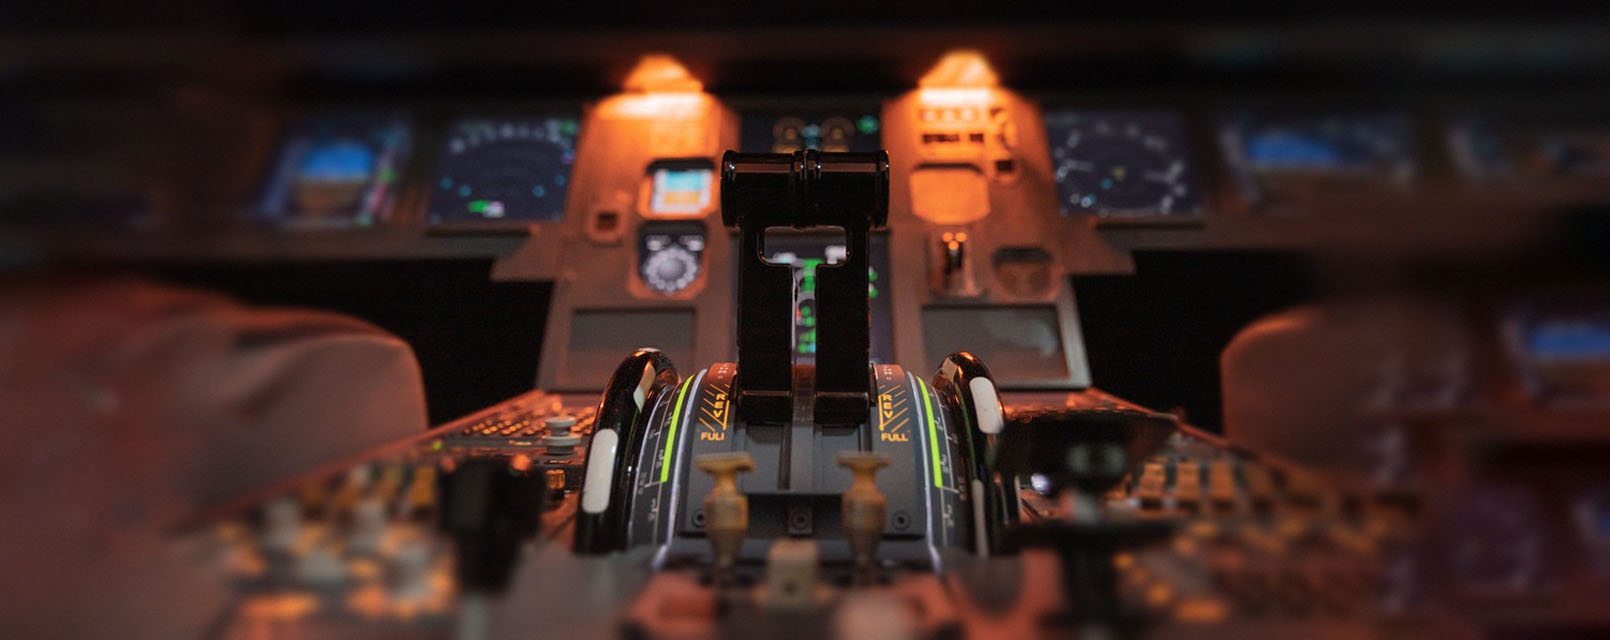 The Value of Good Document Management For Airlines